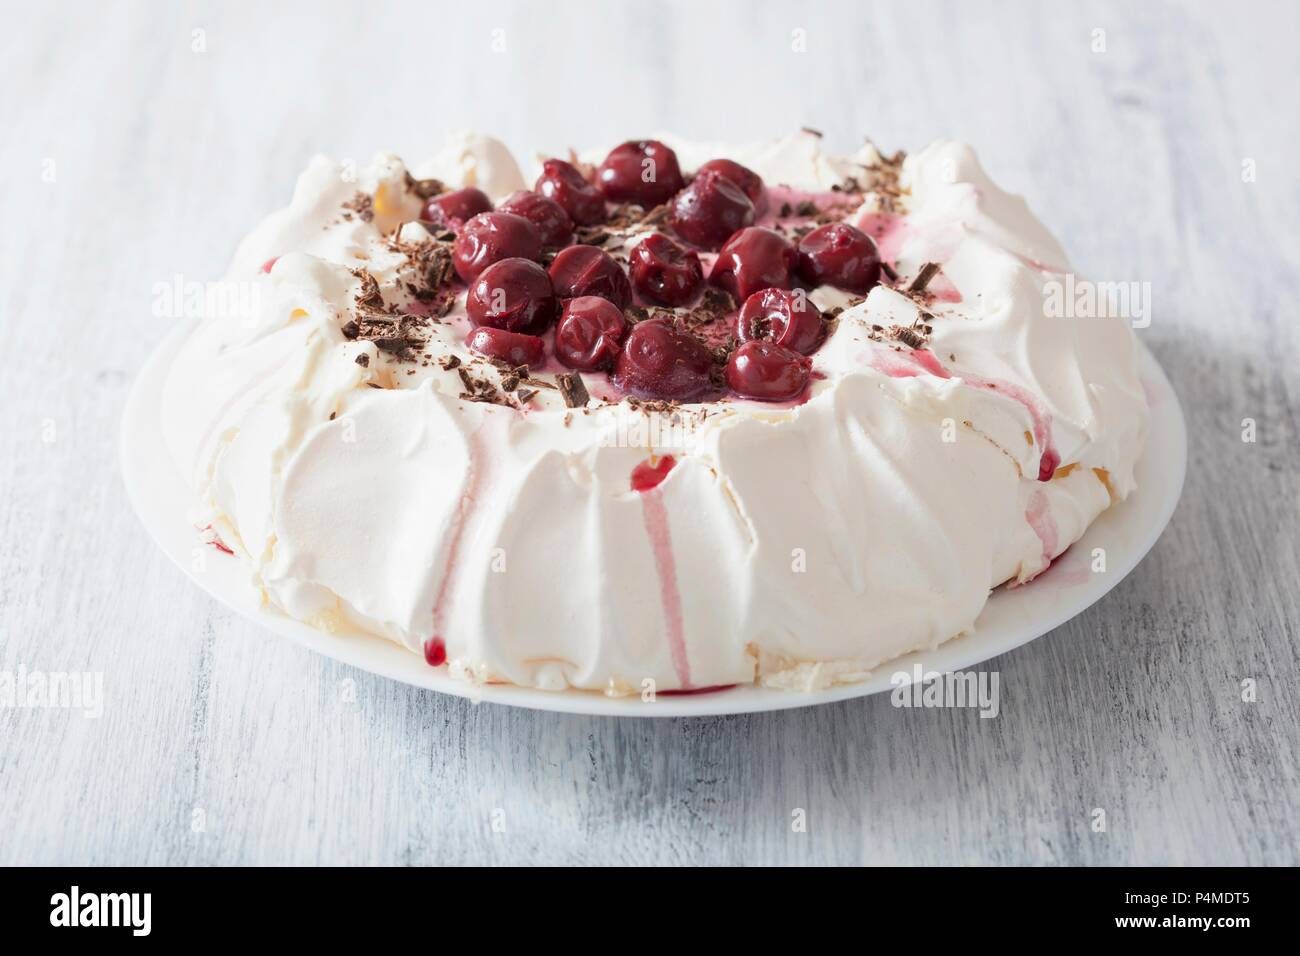 Pavlova with cherries and chocolate - Stock Image